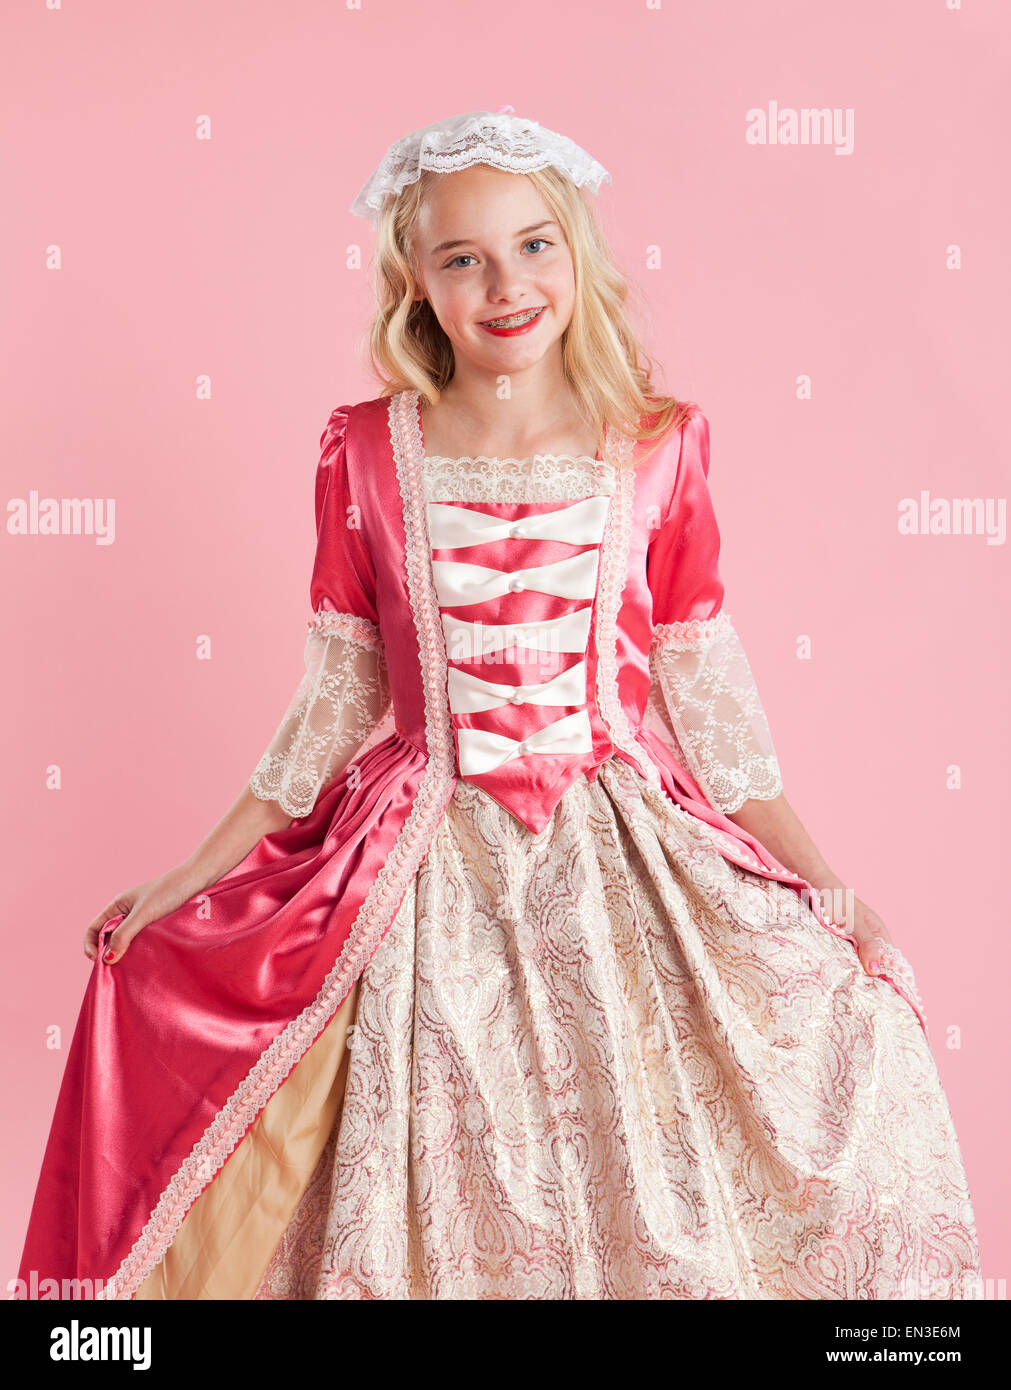 Portrait of girl (10-11) in colonial princess dress for Halloween - Stock Image